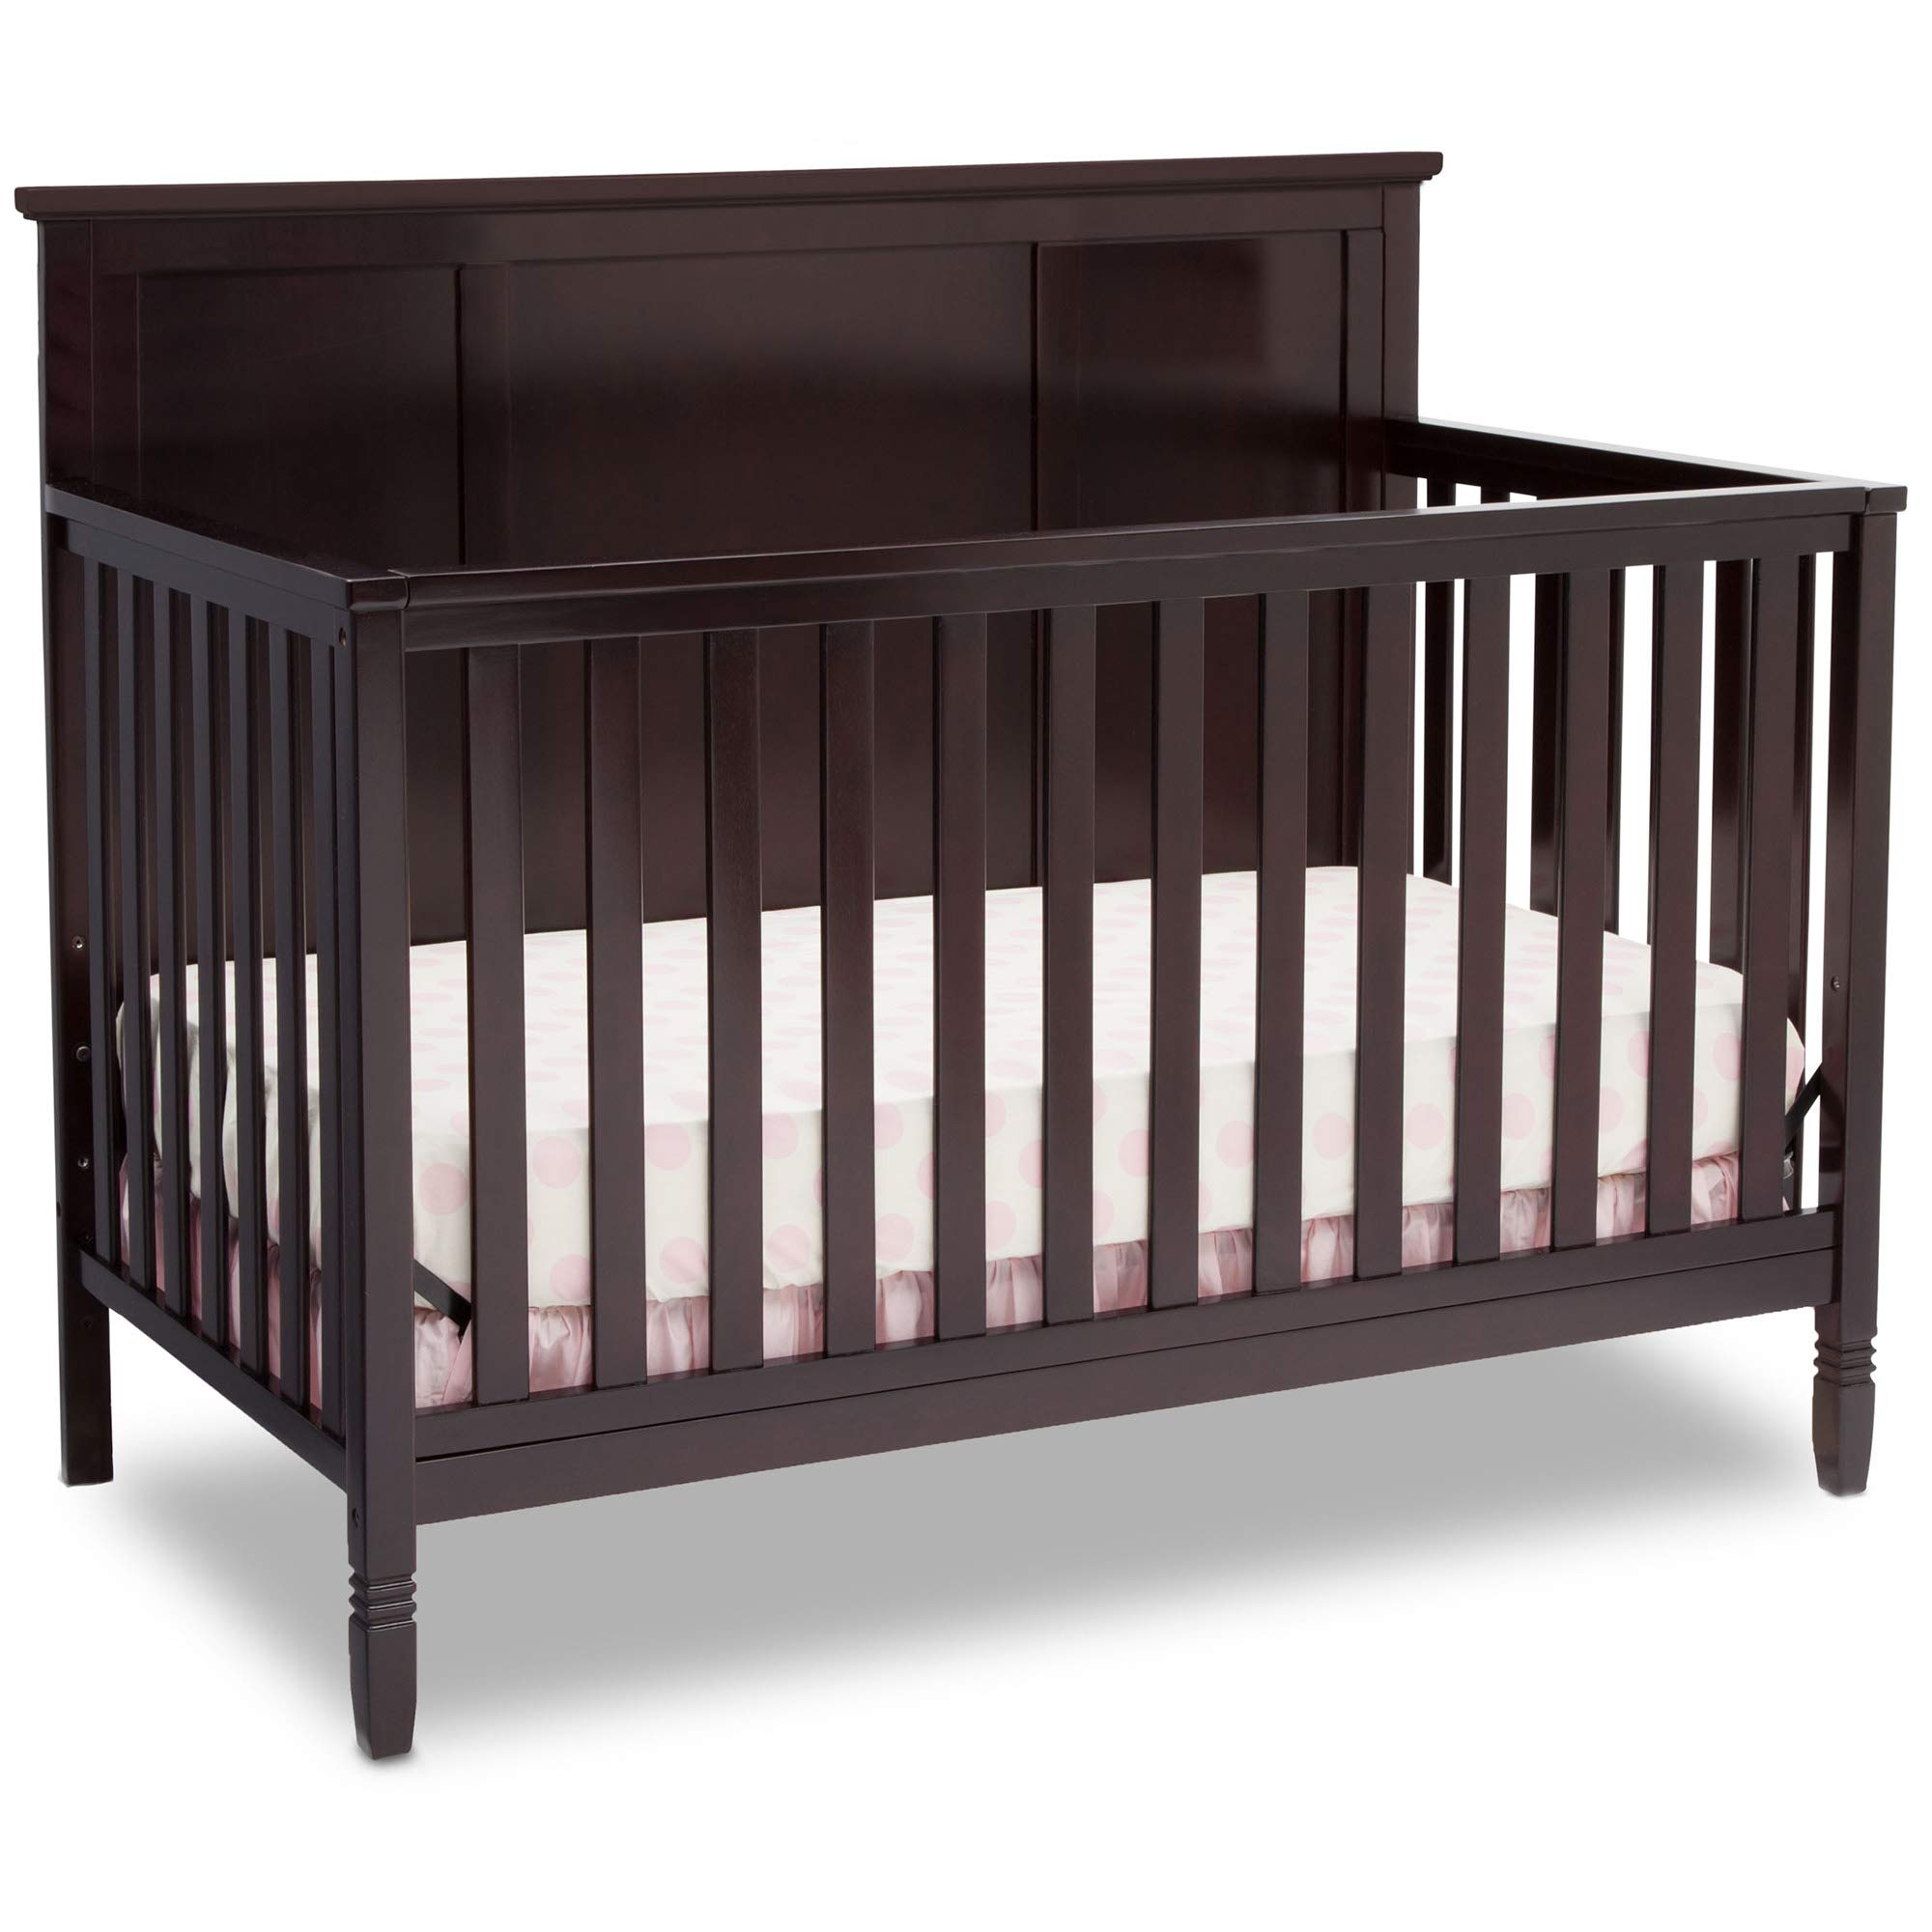 Delta Children Easton 4-in-1 Convertible Baby Crib, Dark Chocolate